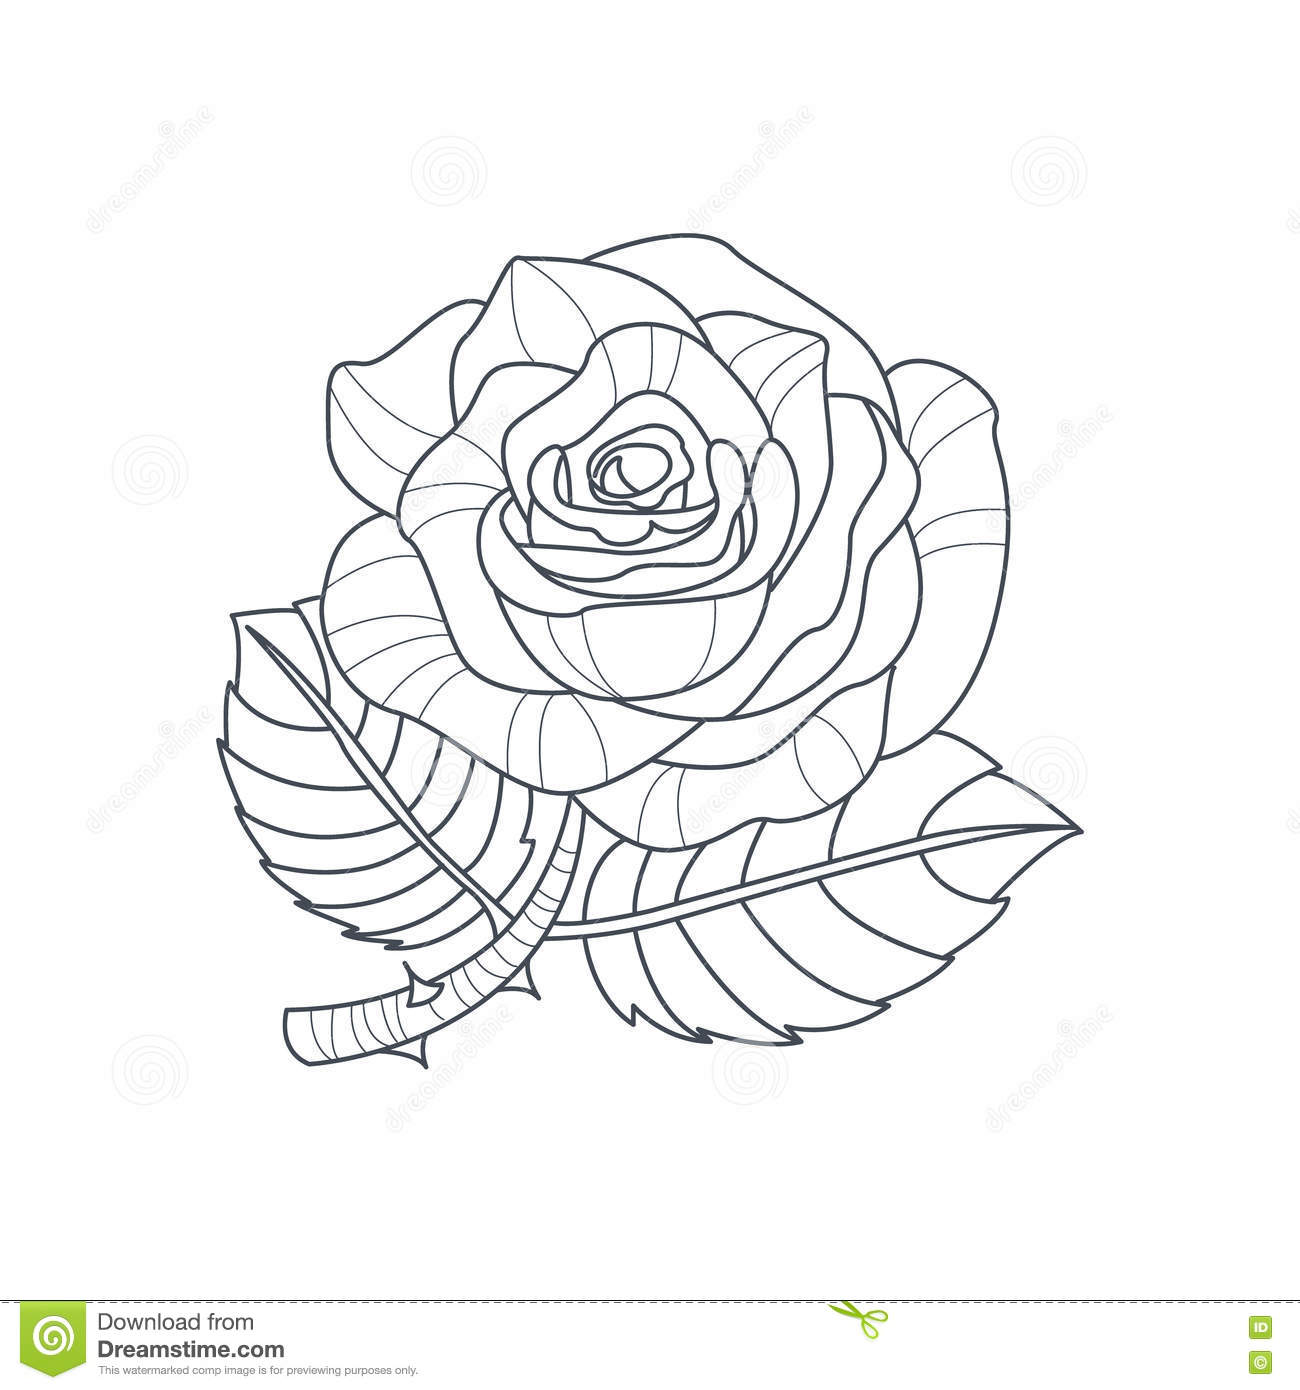 Rose Flower Monochrome Drawing For Coloring Book Stock Vector